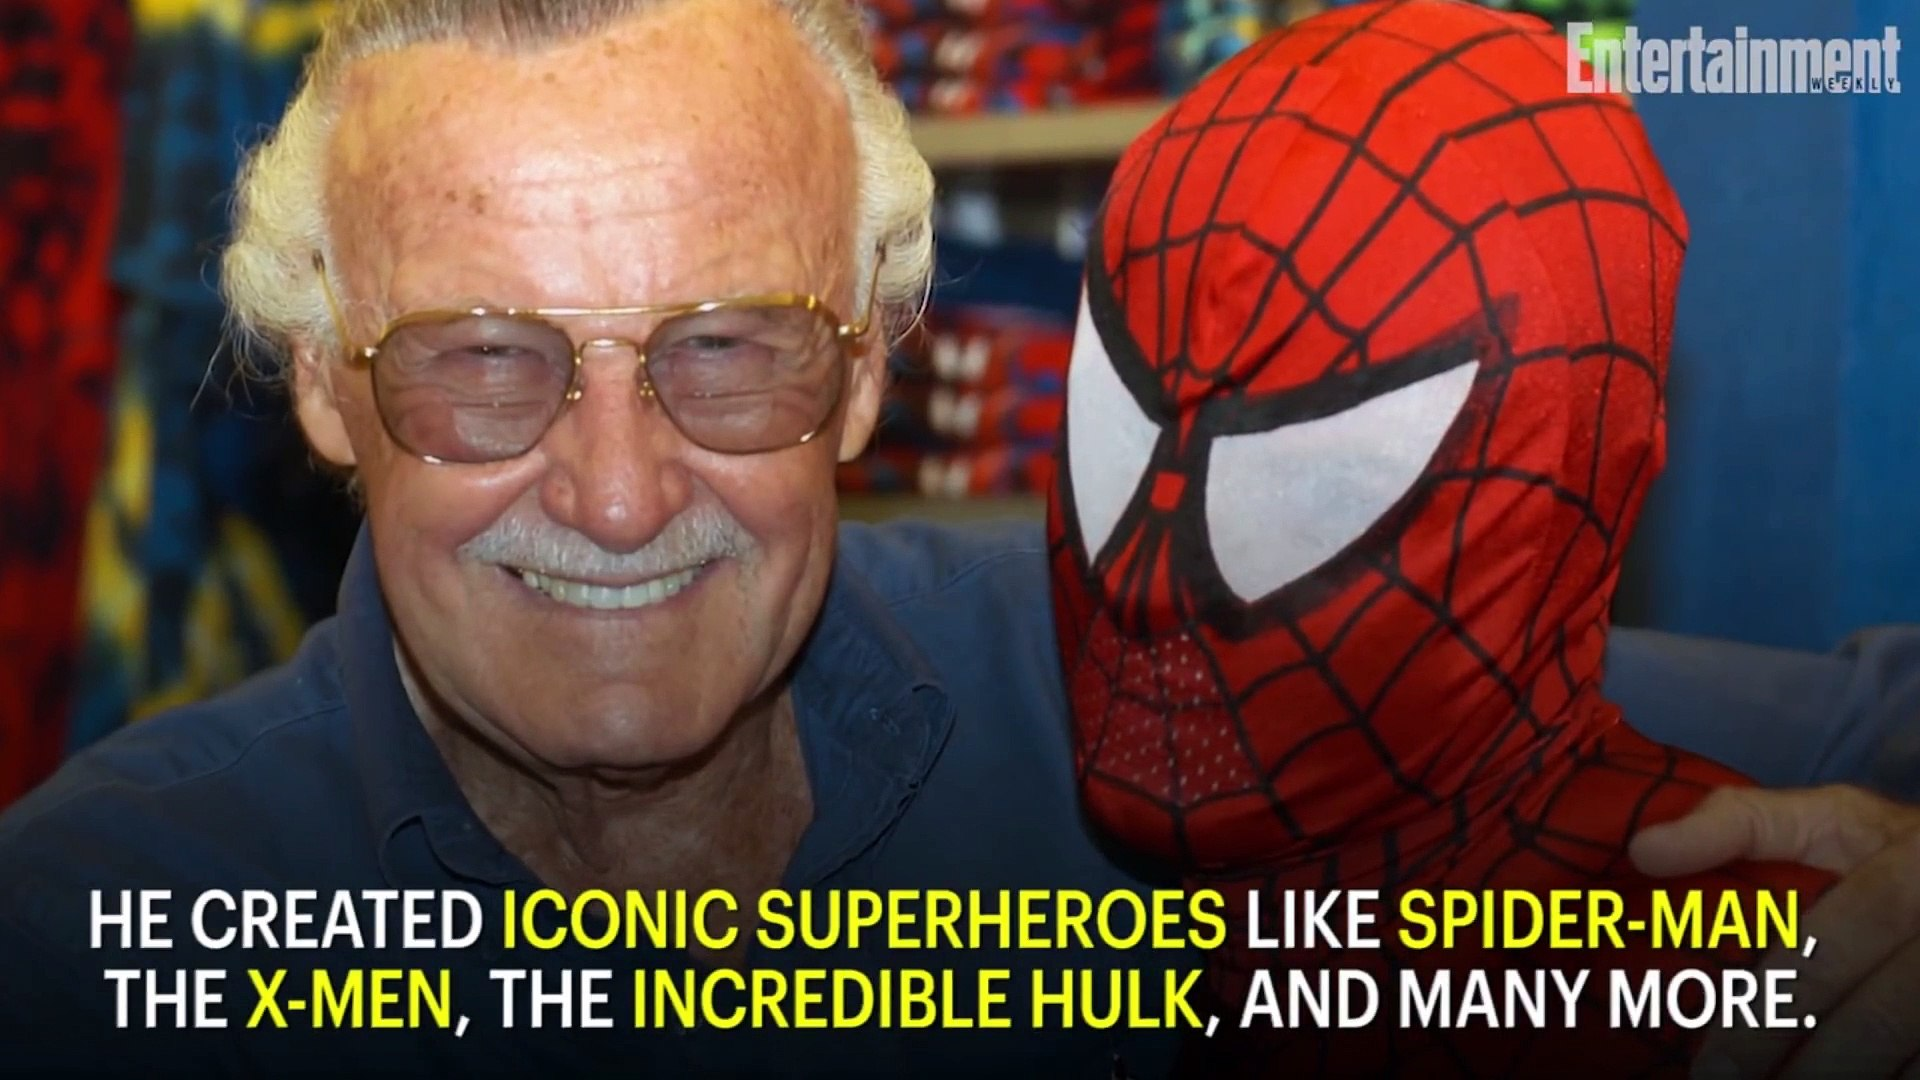 Marvel Comics Legend Stan Lee Dies At 95 - News Flash - Entertainment Weekly